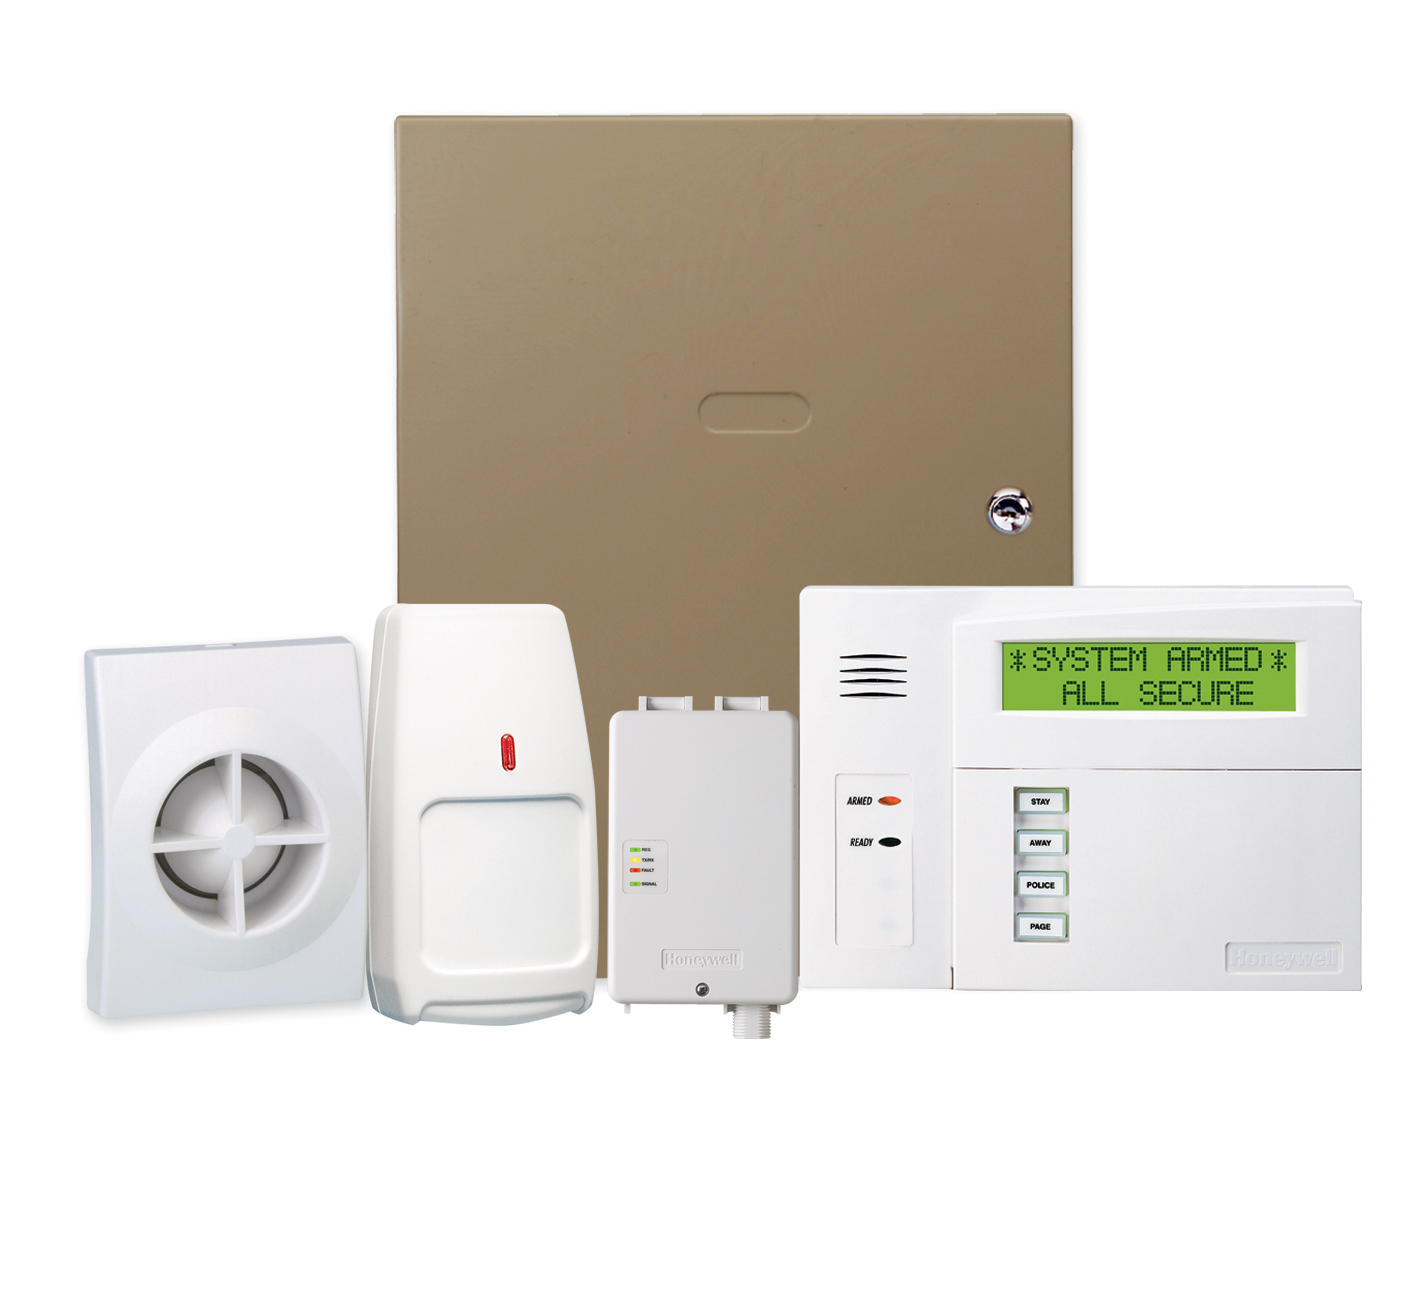 Wired And Wireless Security Systems Derby City Alarm Contacts Wiring In Series Let Service Install A New System Like The Honeywell Ademco Vista 15p At Your Location Contact Us To Discuss